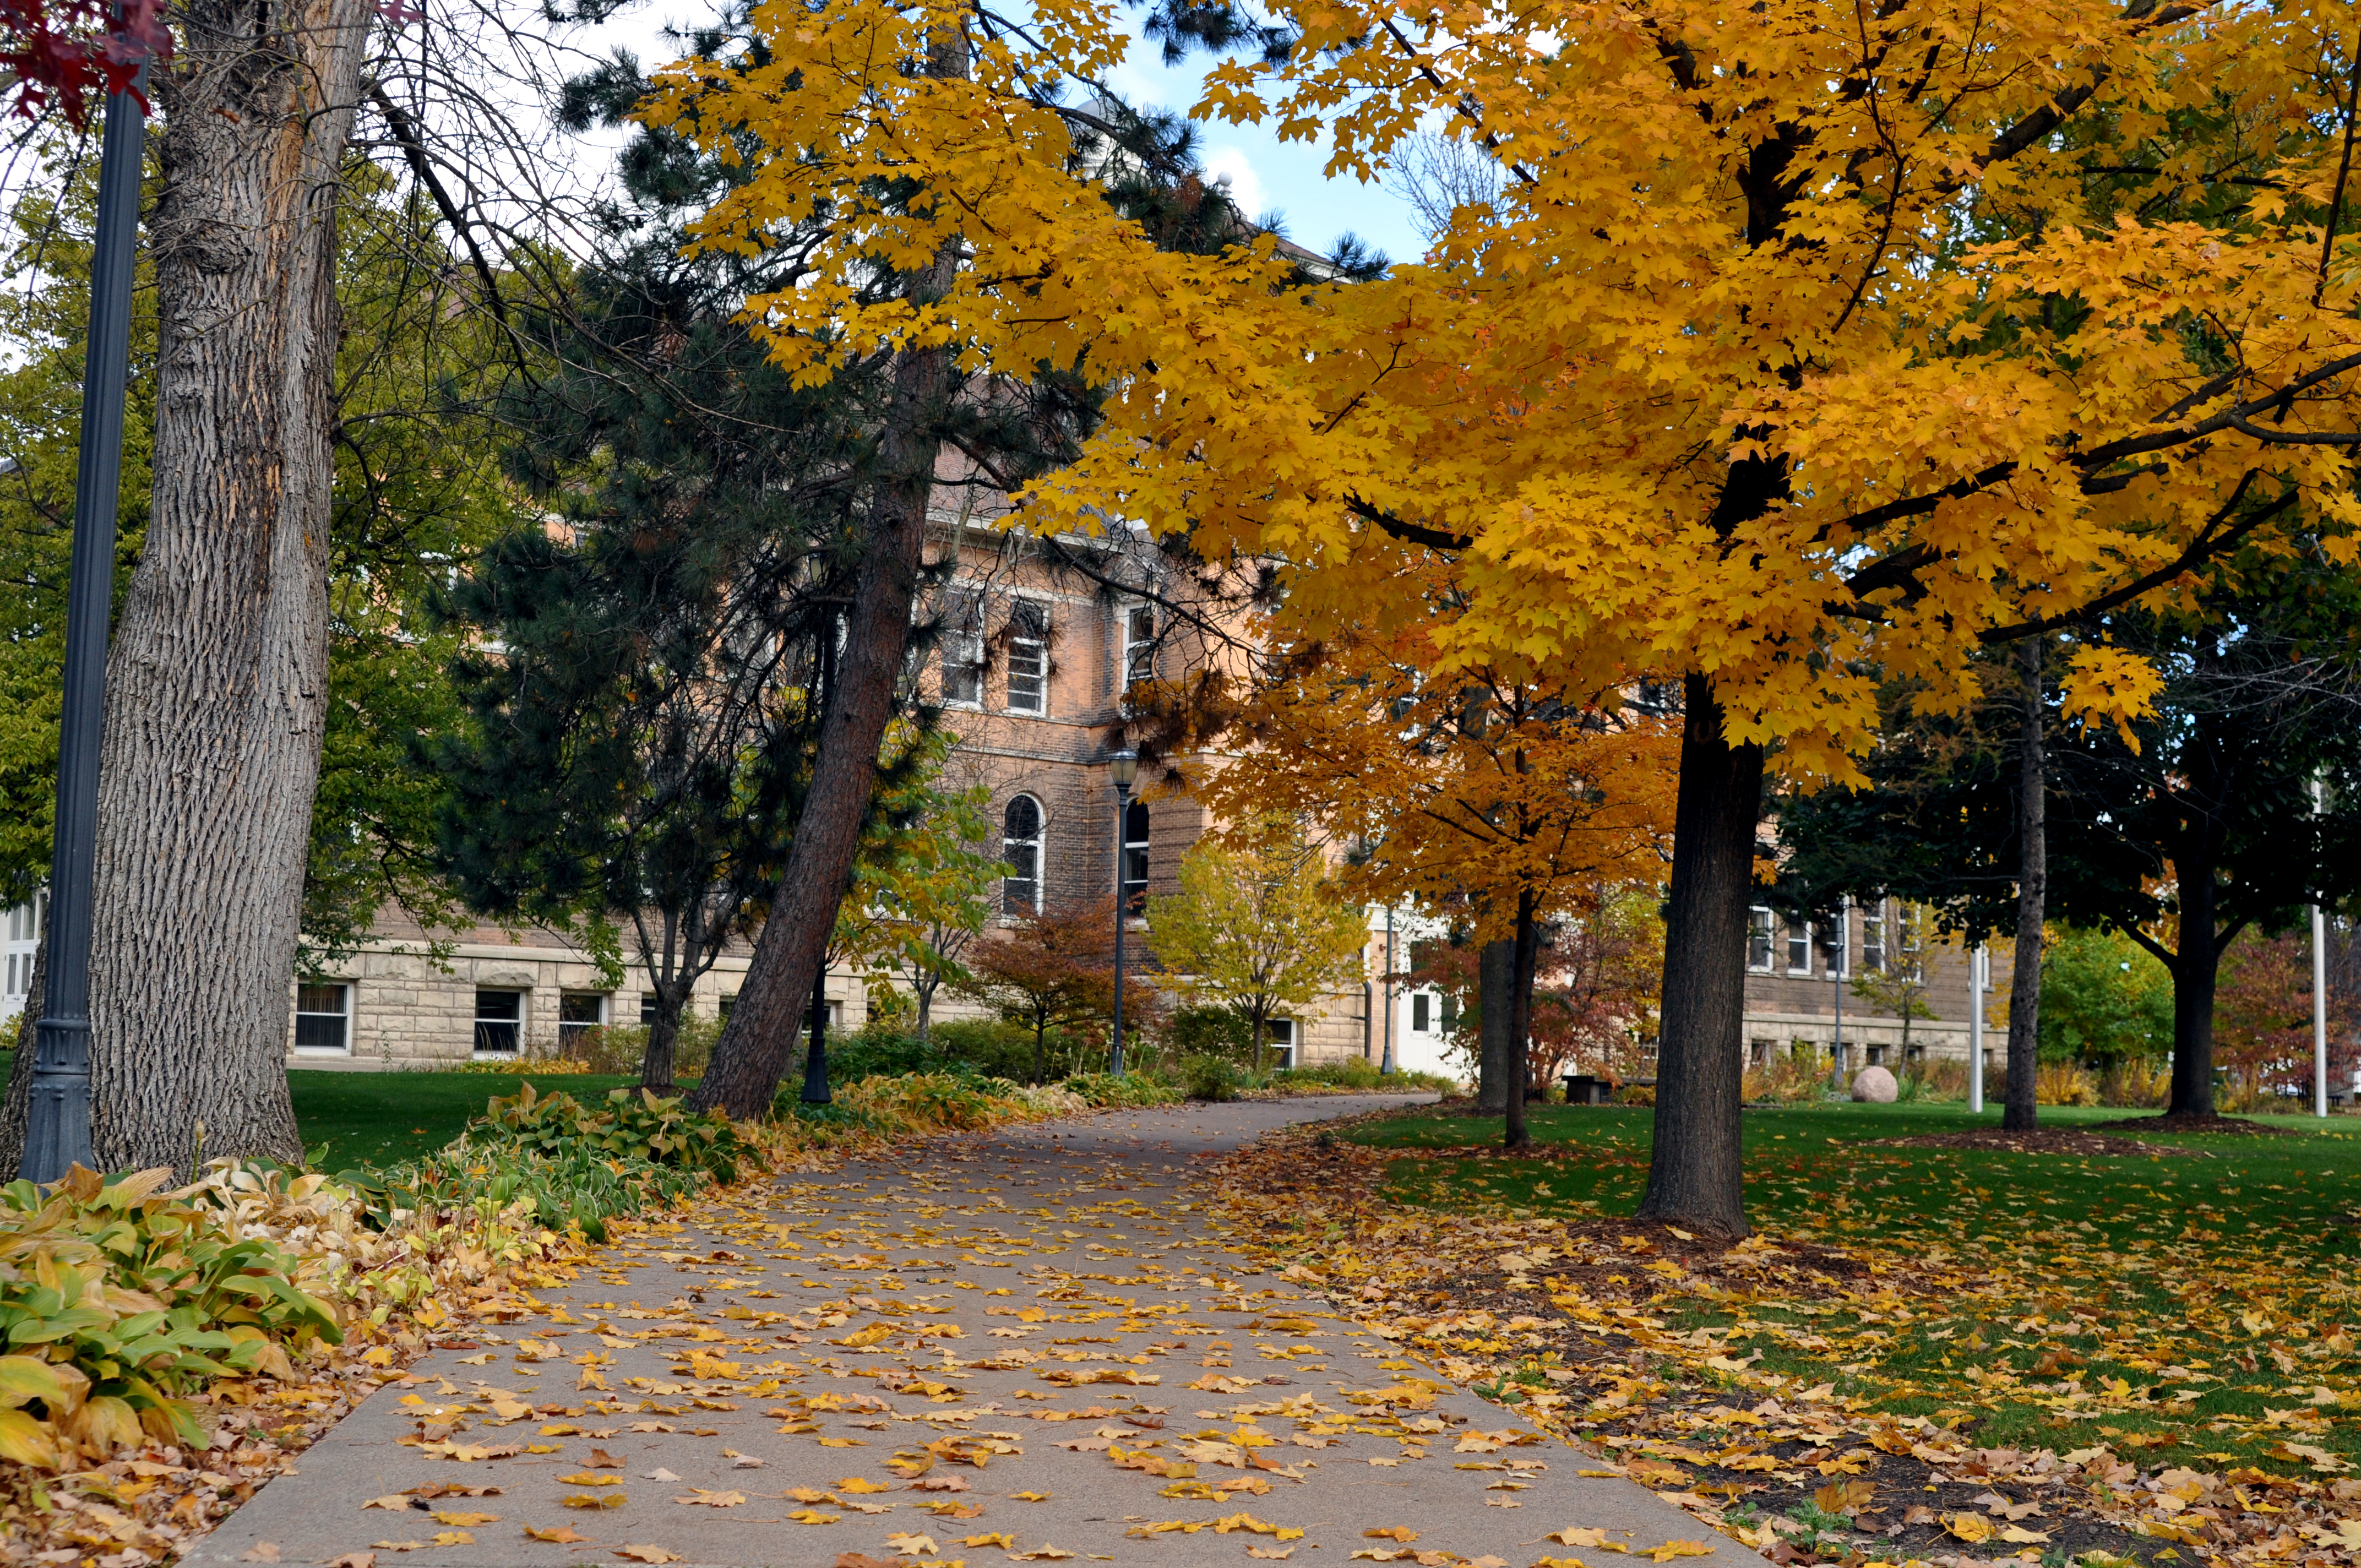 UWSP Adds 'Tree Campus USA' to List of Environmental Accolades